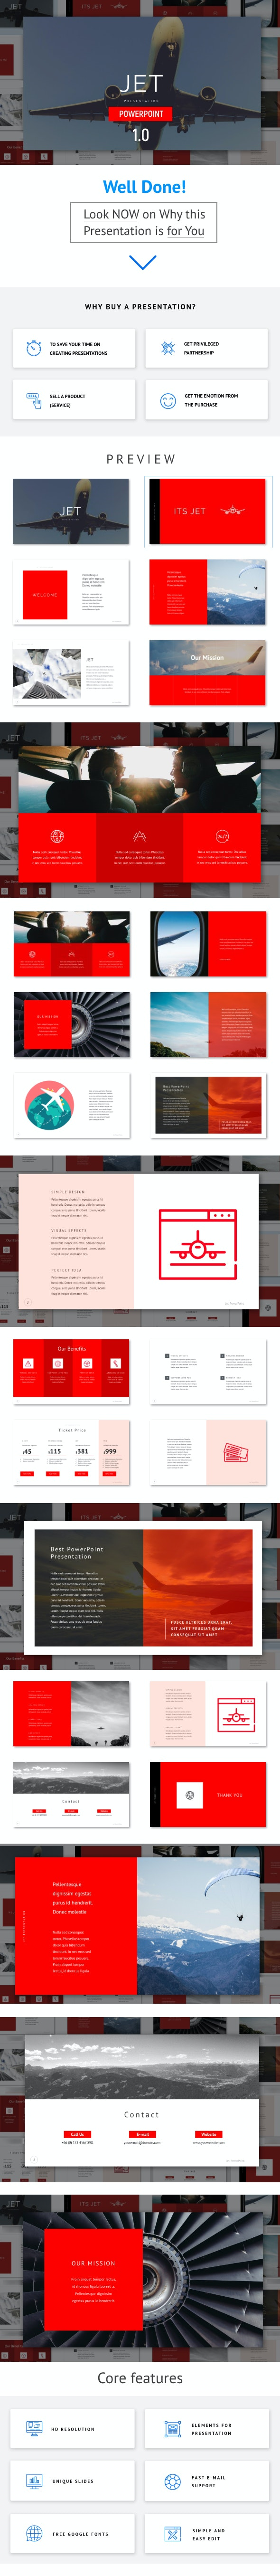 Airplane - Powerpoint Template - PowerPoint Templates Presentation Templates